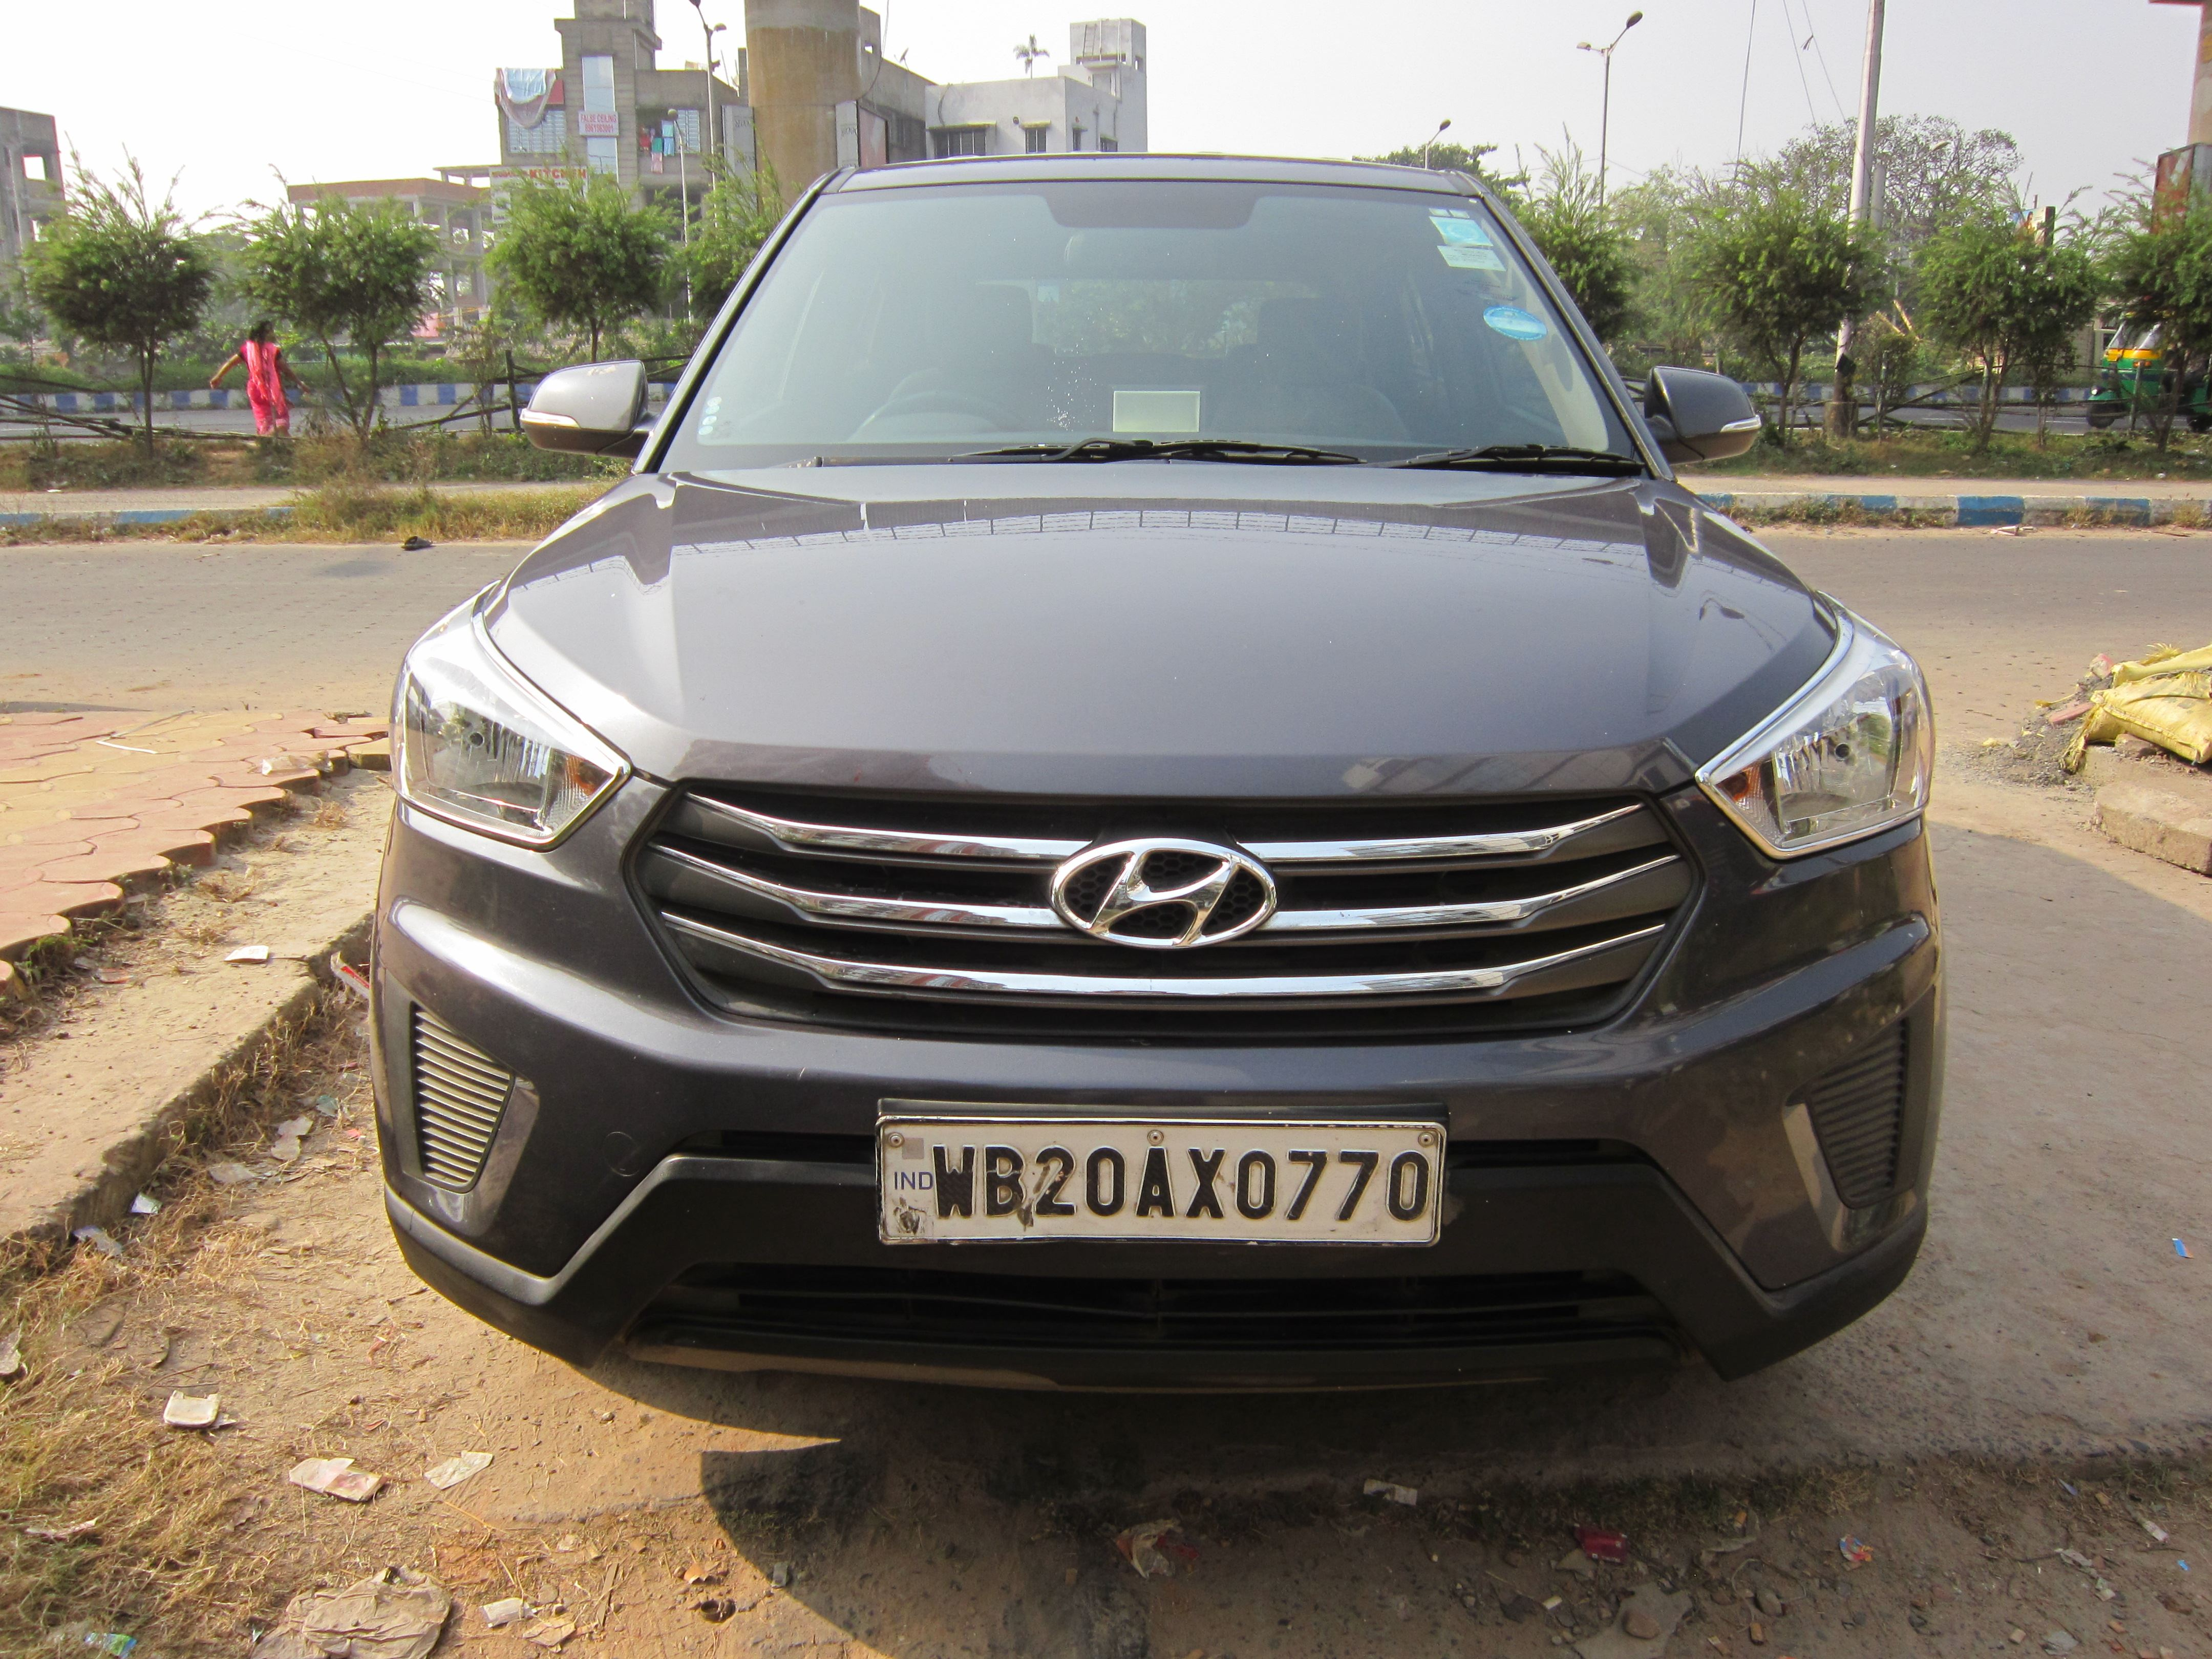 2017 Used Hyundai Creta CRDI 1.4 E PLUS